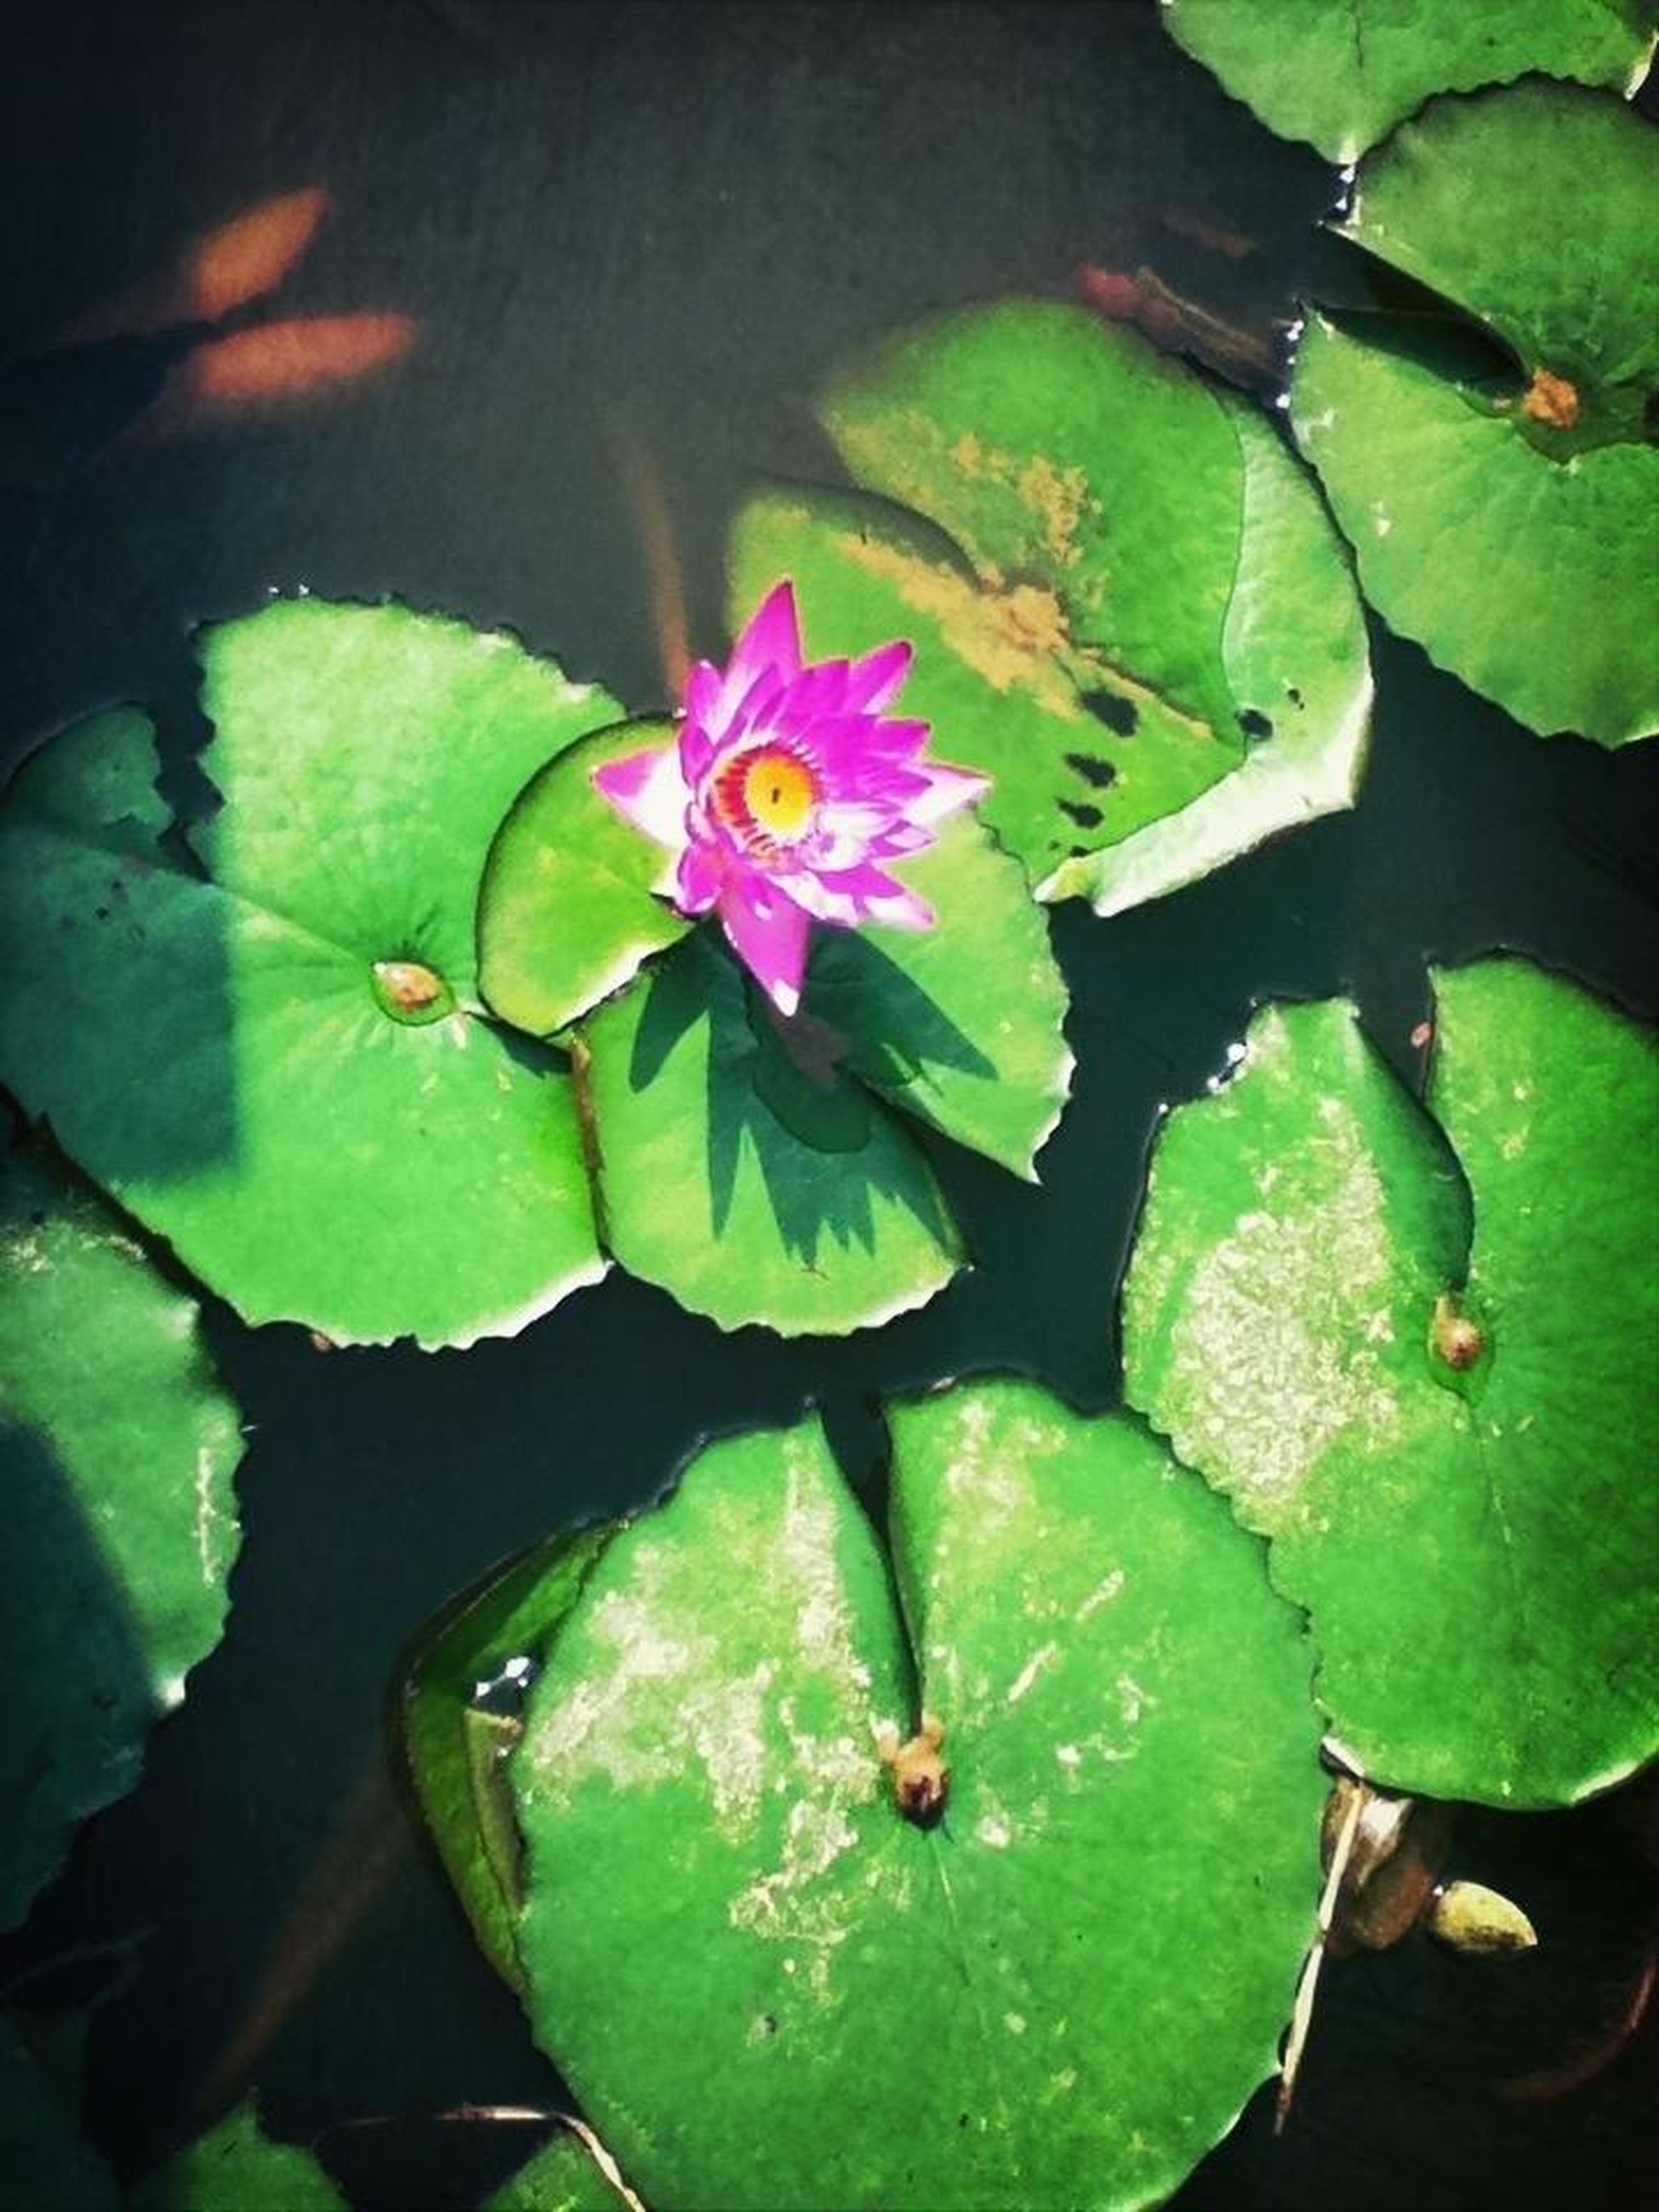 leaf, water lily, pond, floating on water, flower, water, green color, growth, lotus water lily, freshness, plant, fragility, beauty in nature, high angle view, nature, petal, close-up, leaves, flower head, reflection